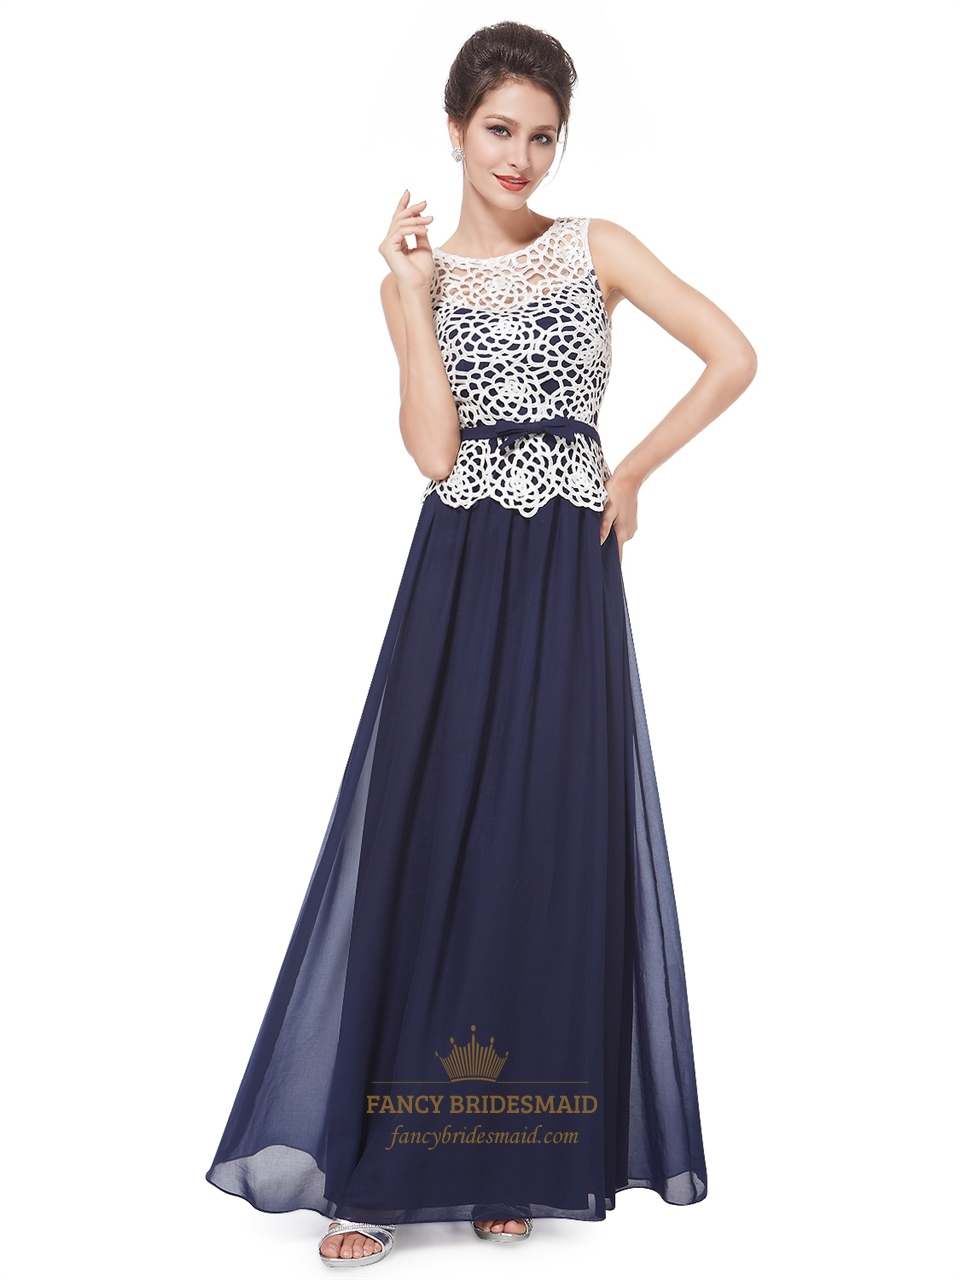 Blue Prom Dress With White Lace TopWomens Sleeveless